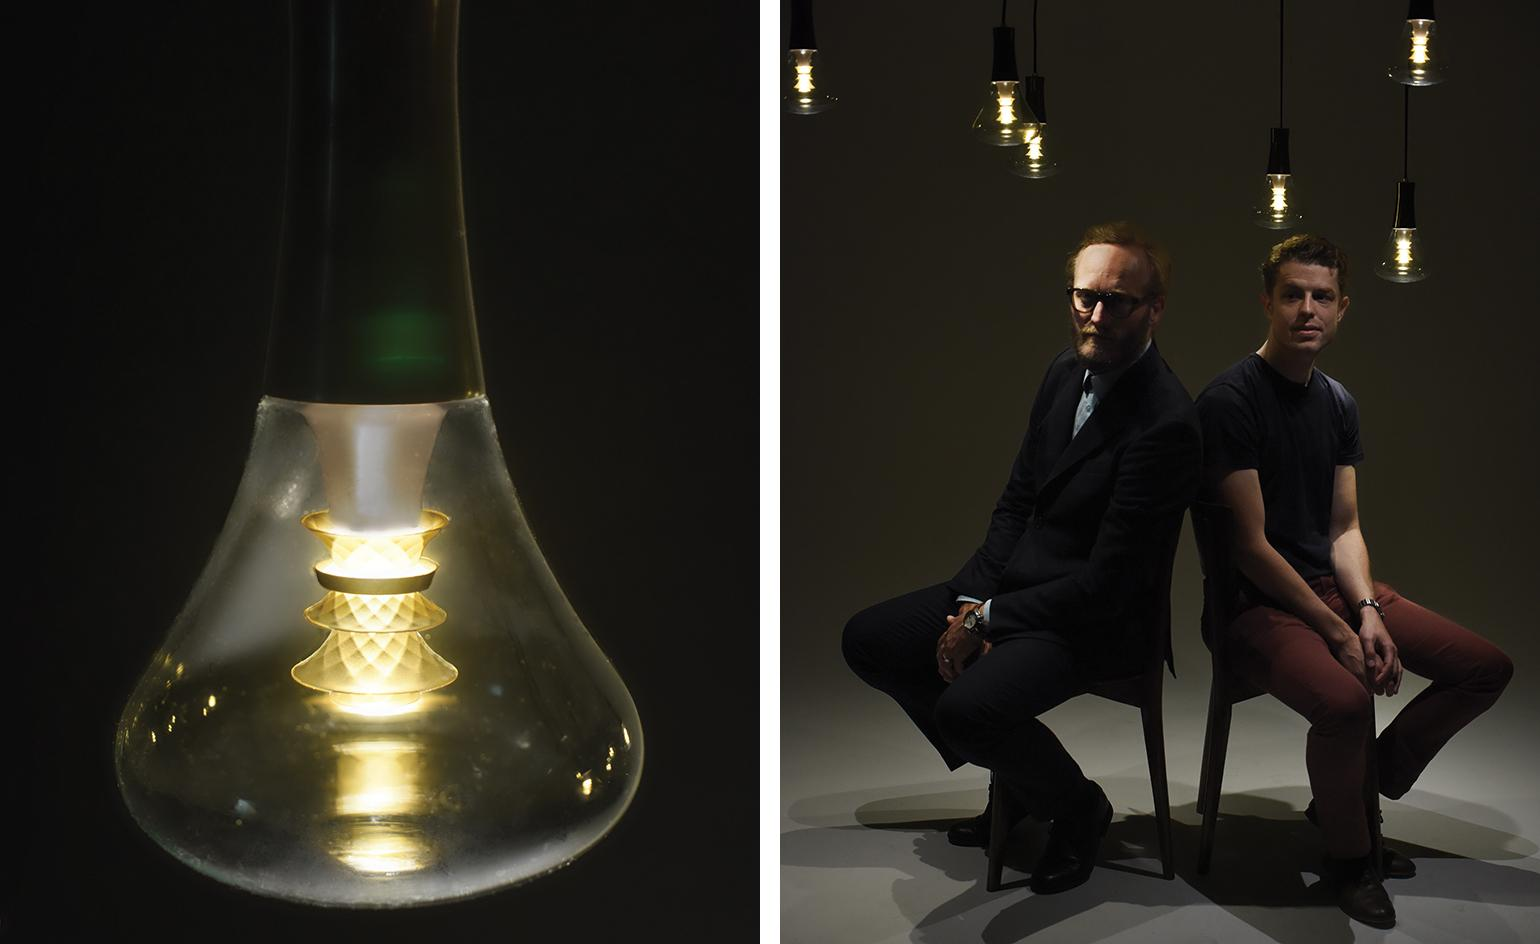 Bright sparks: Plumen's latest energy-efficient bulb recreates the soft glow of an earlier age